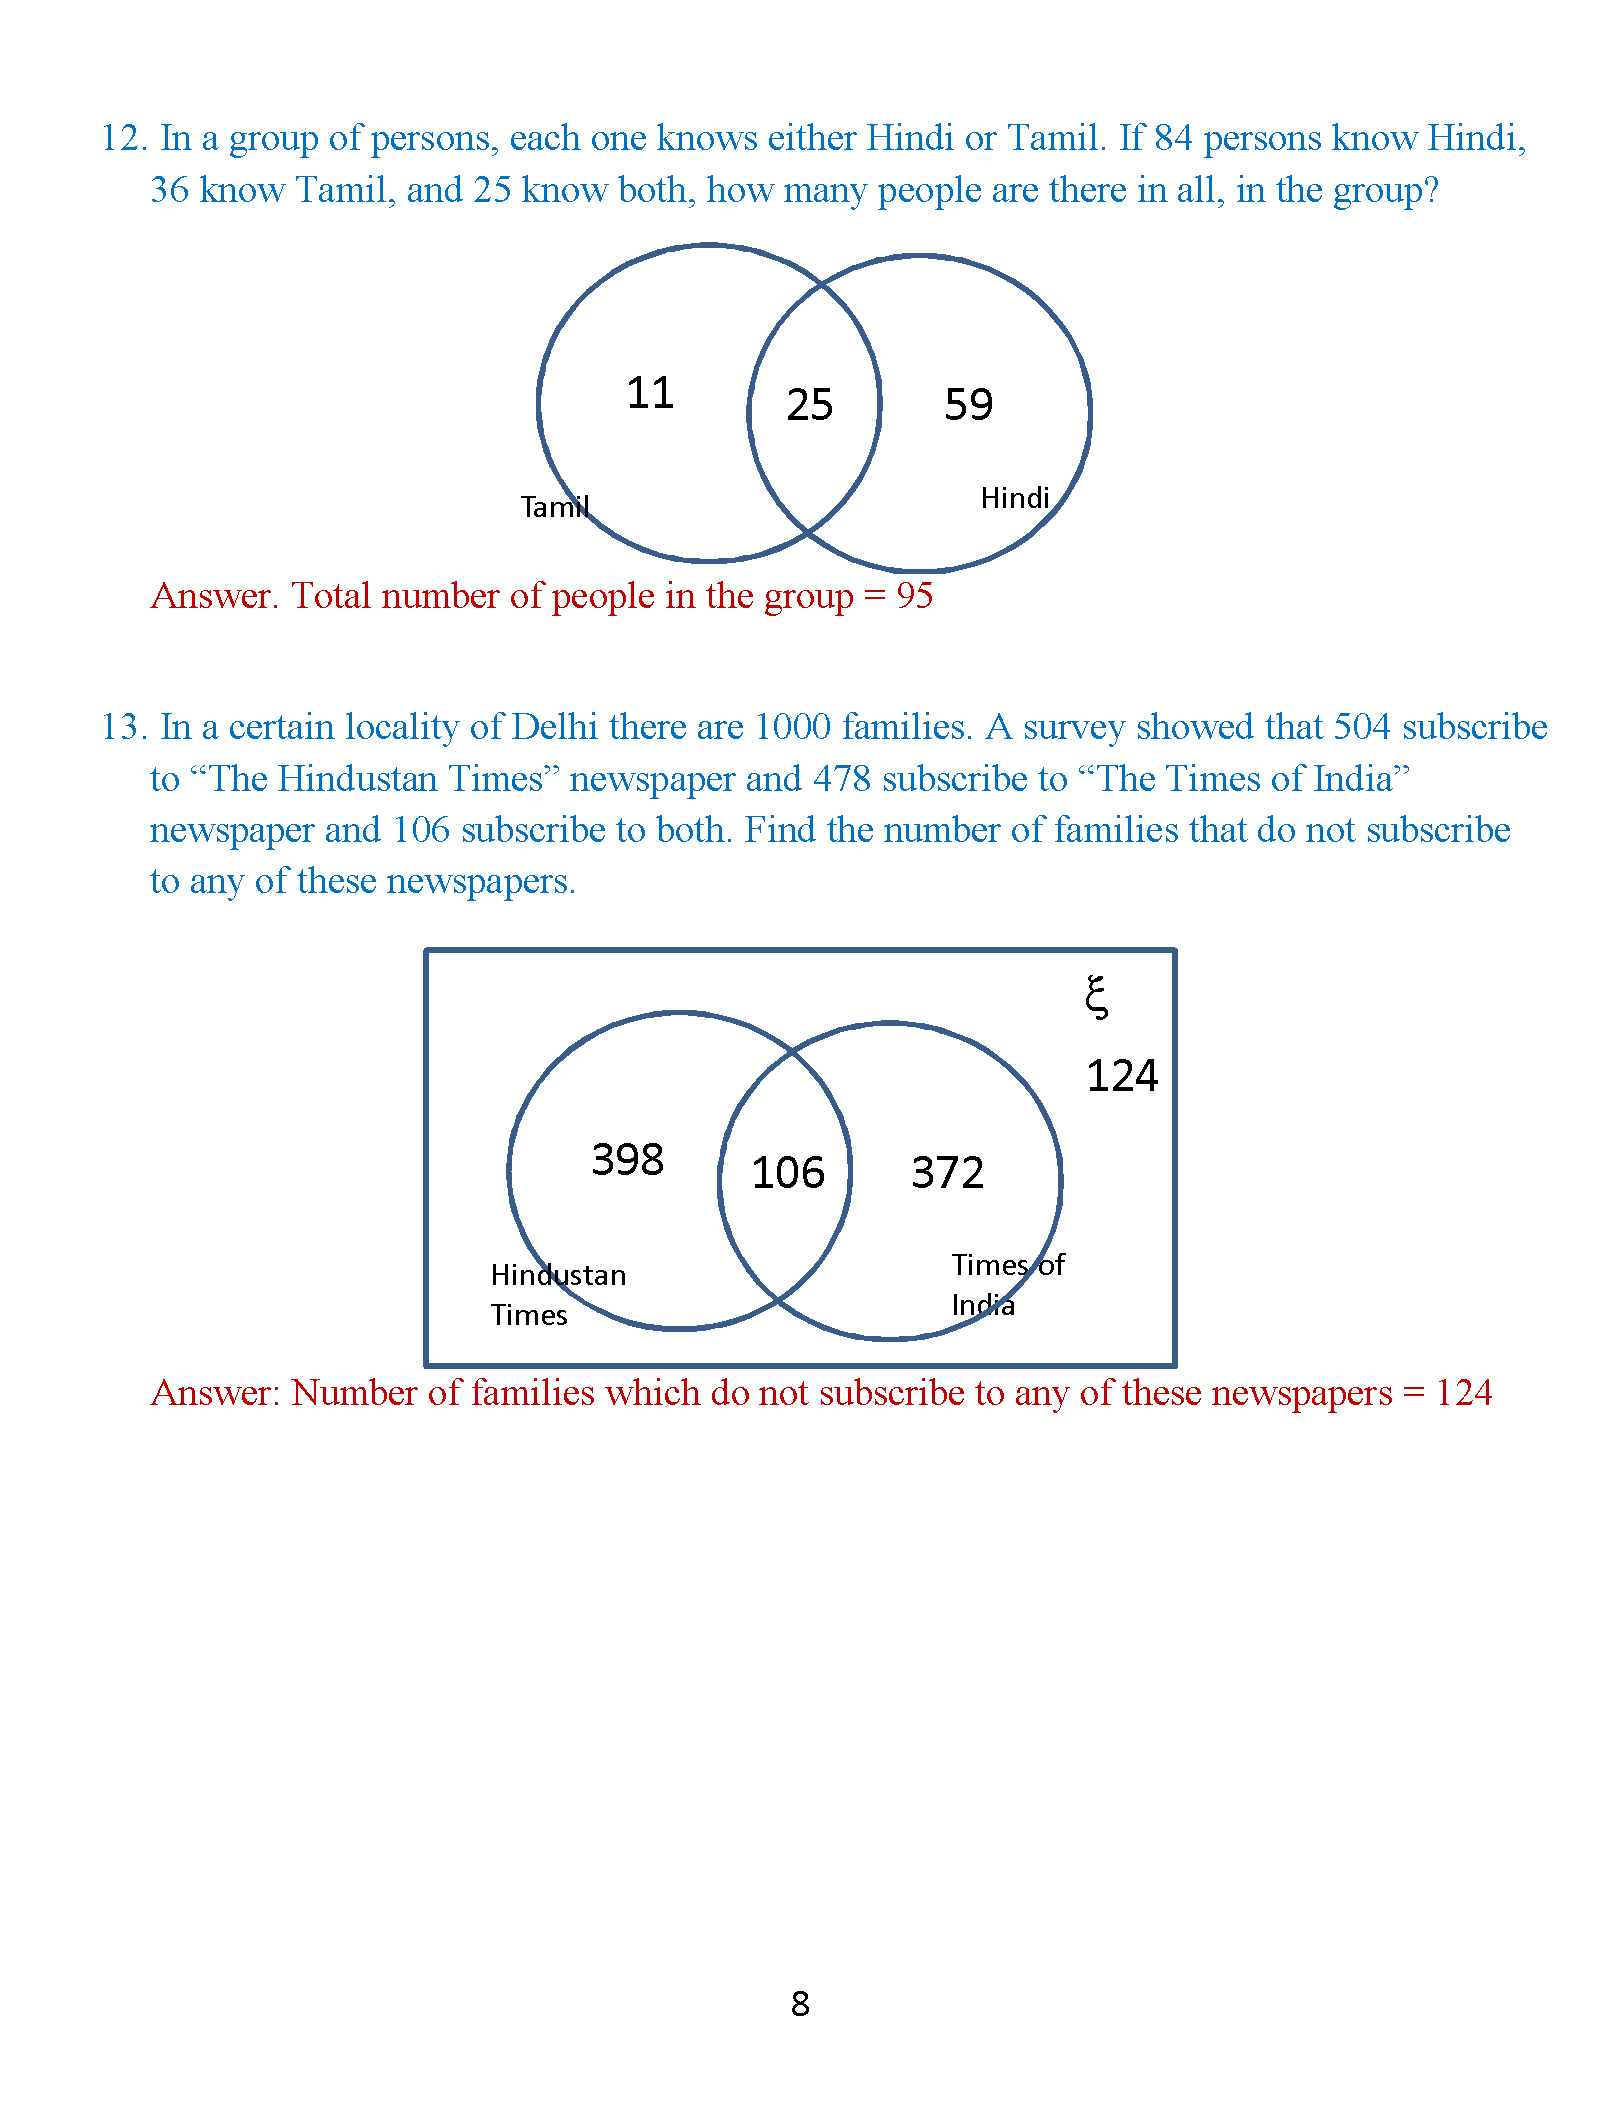 venn diagram problems with answers printable teeth class 8 diagrams exercise 2 icse isc mathematics portal chapter 1 page